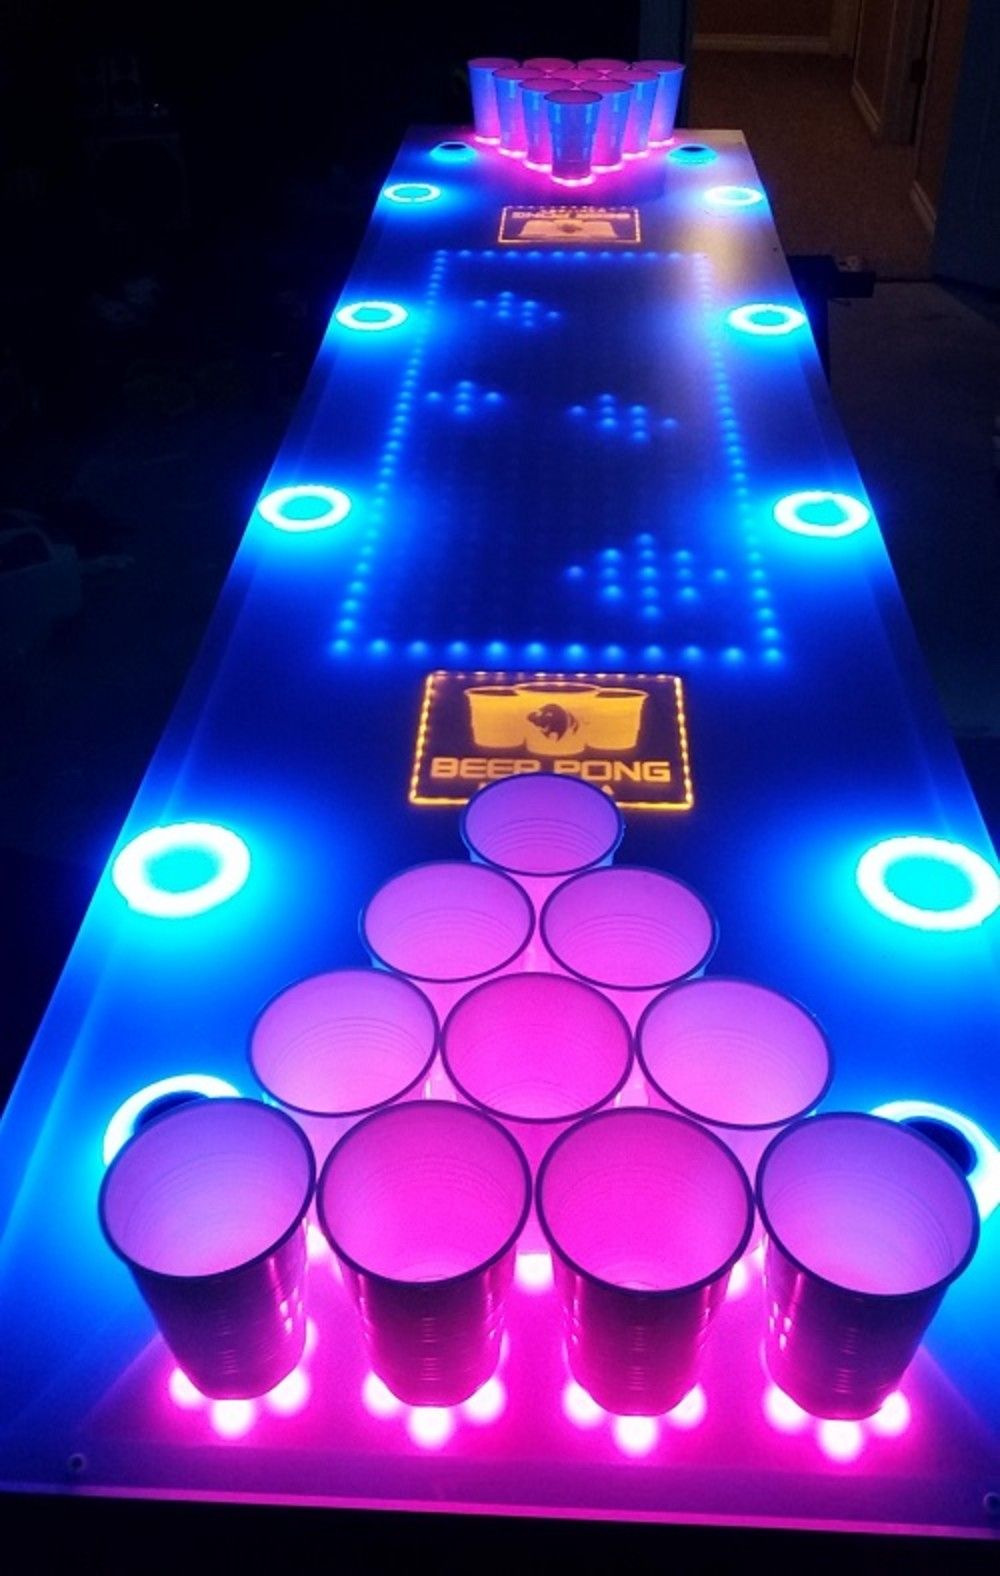 Led Beer Pong Table Creative Home Bars Pinterest Led Beer Pong Table Beer Pong Tables